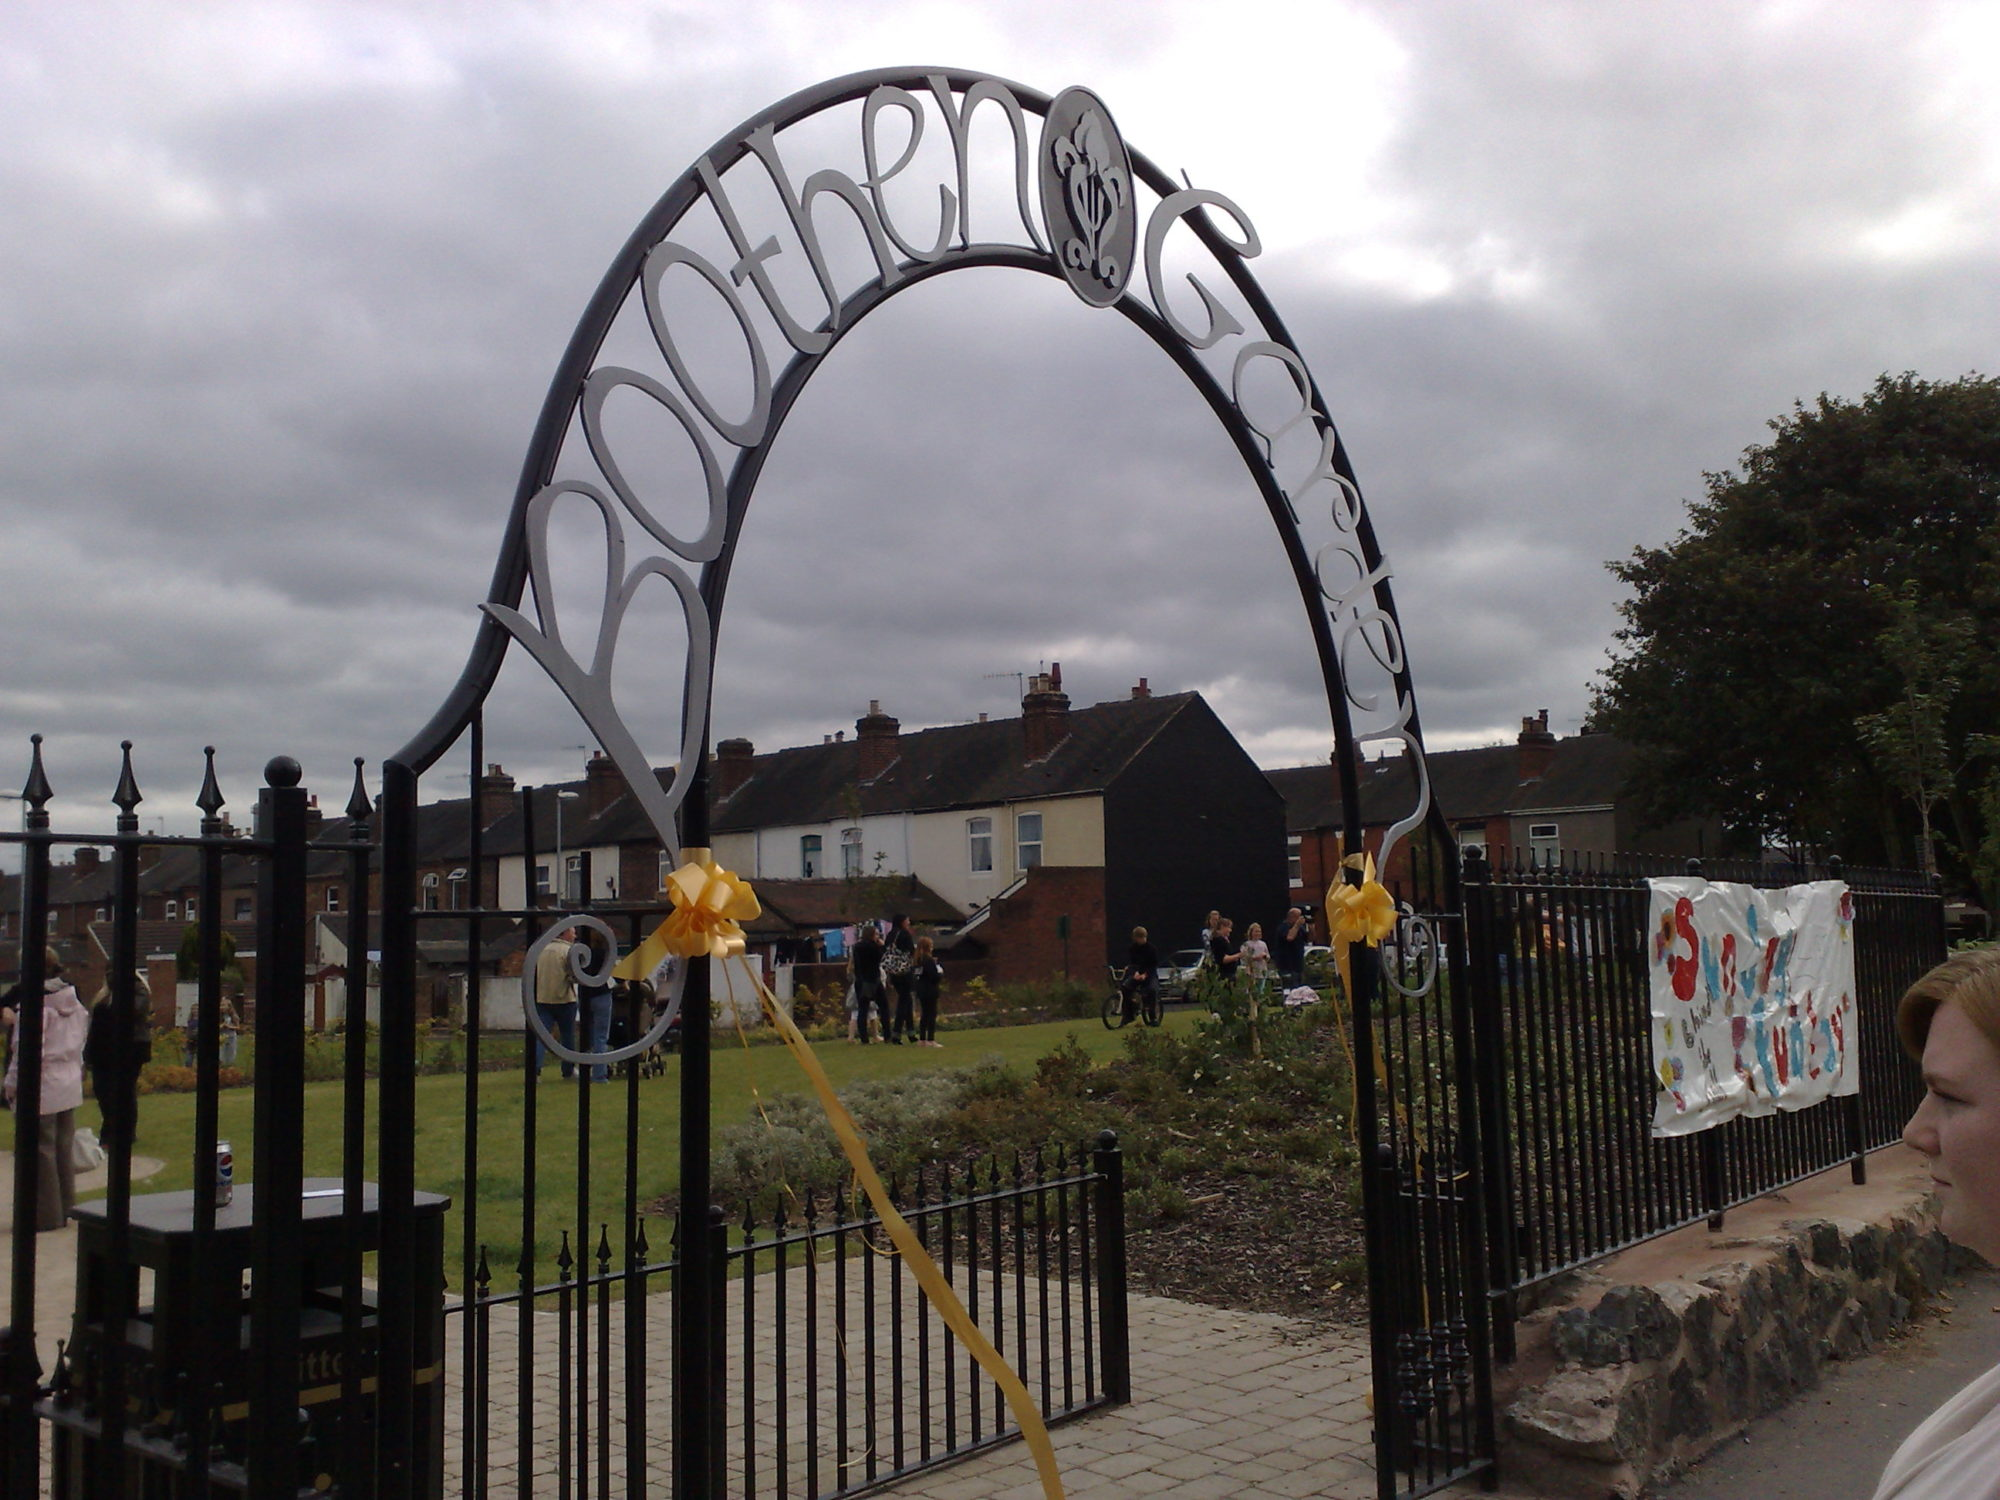 galvanized and polyester powder coated mild steel decorative arch which are compliant to BS 1722 Part 9.